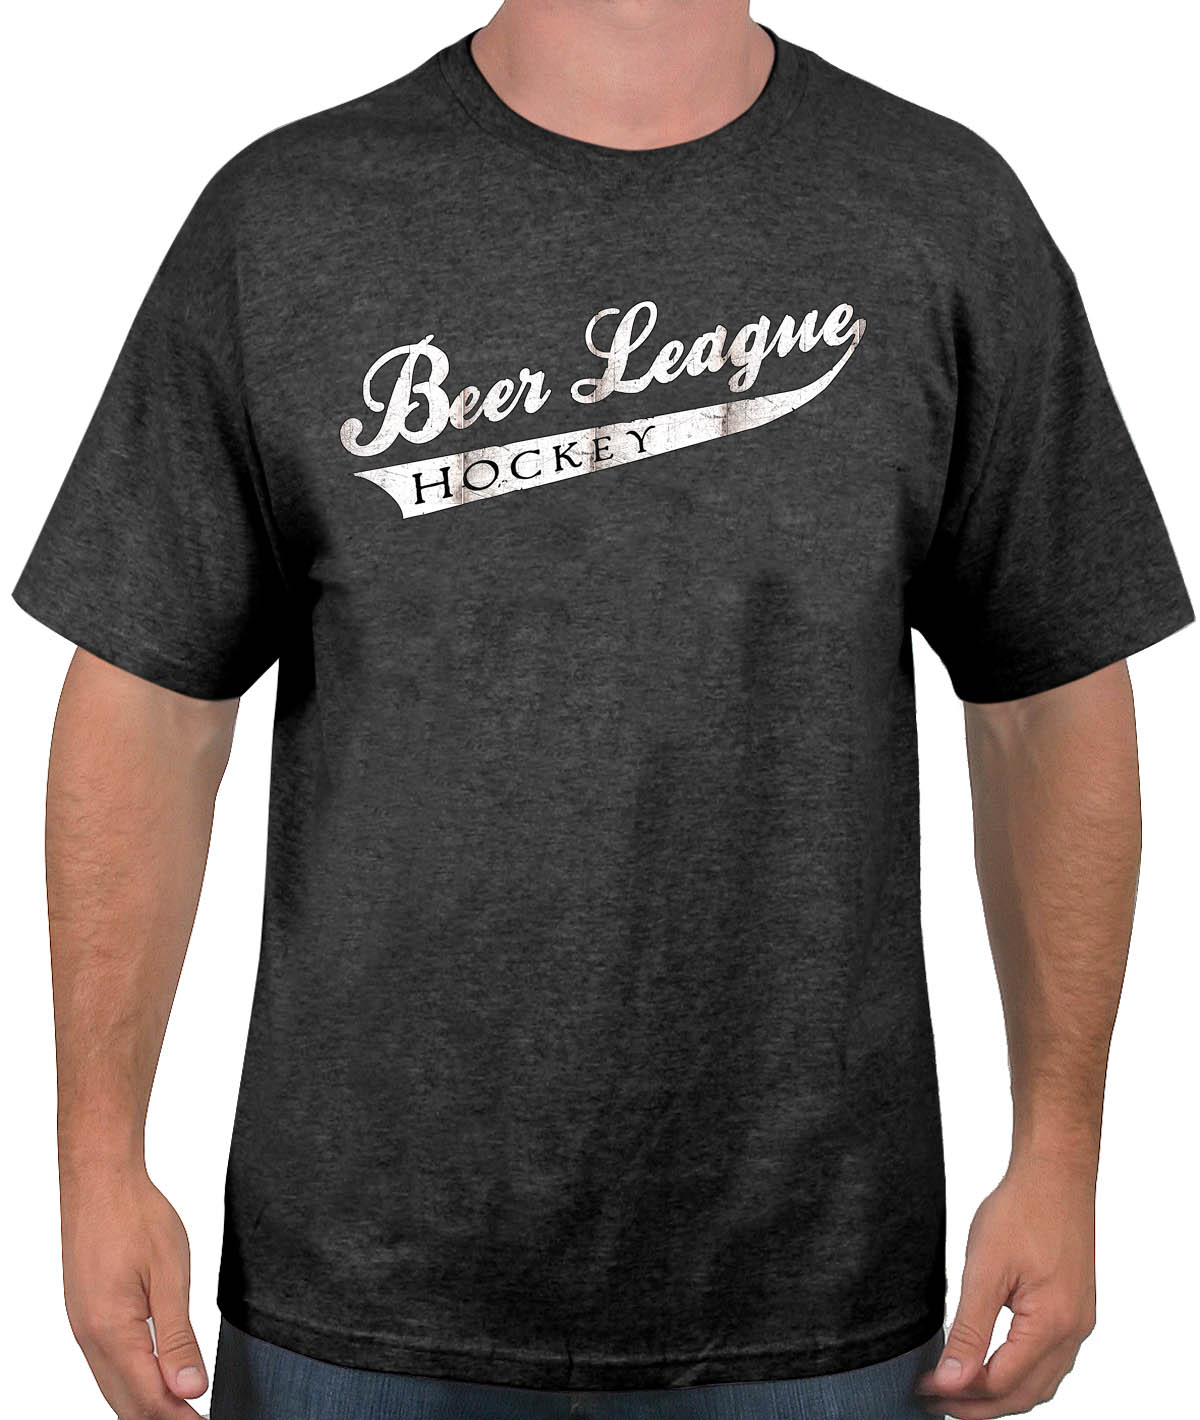 a5e0571963 Buy the Beer League Hockey T-shirt Online at Slingshot Hockey